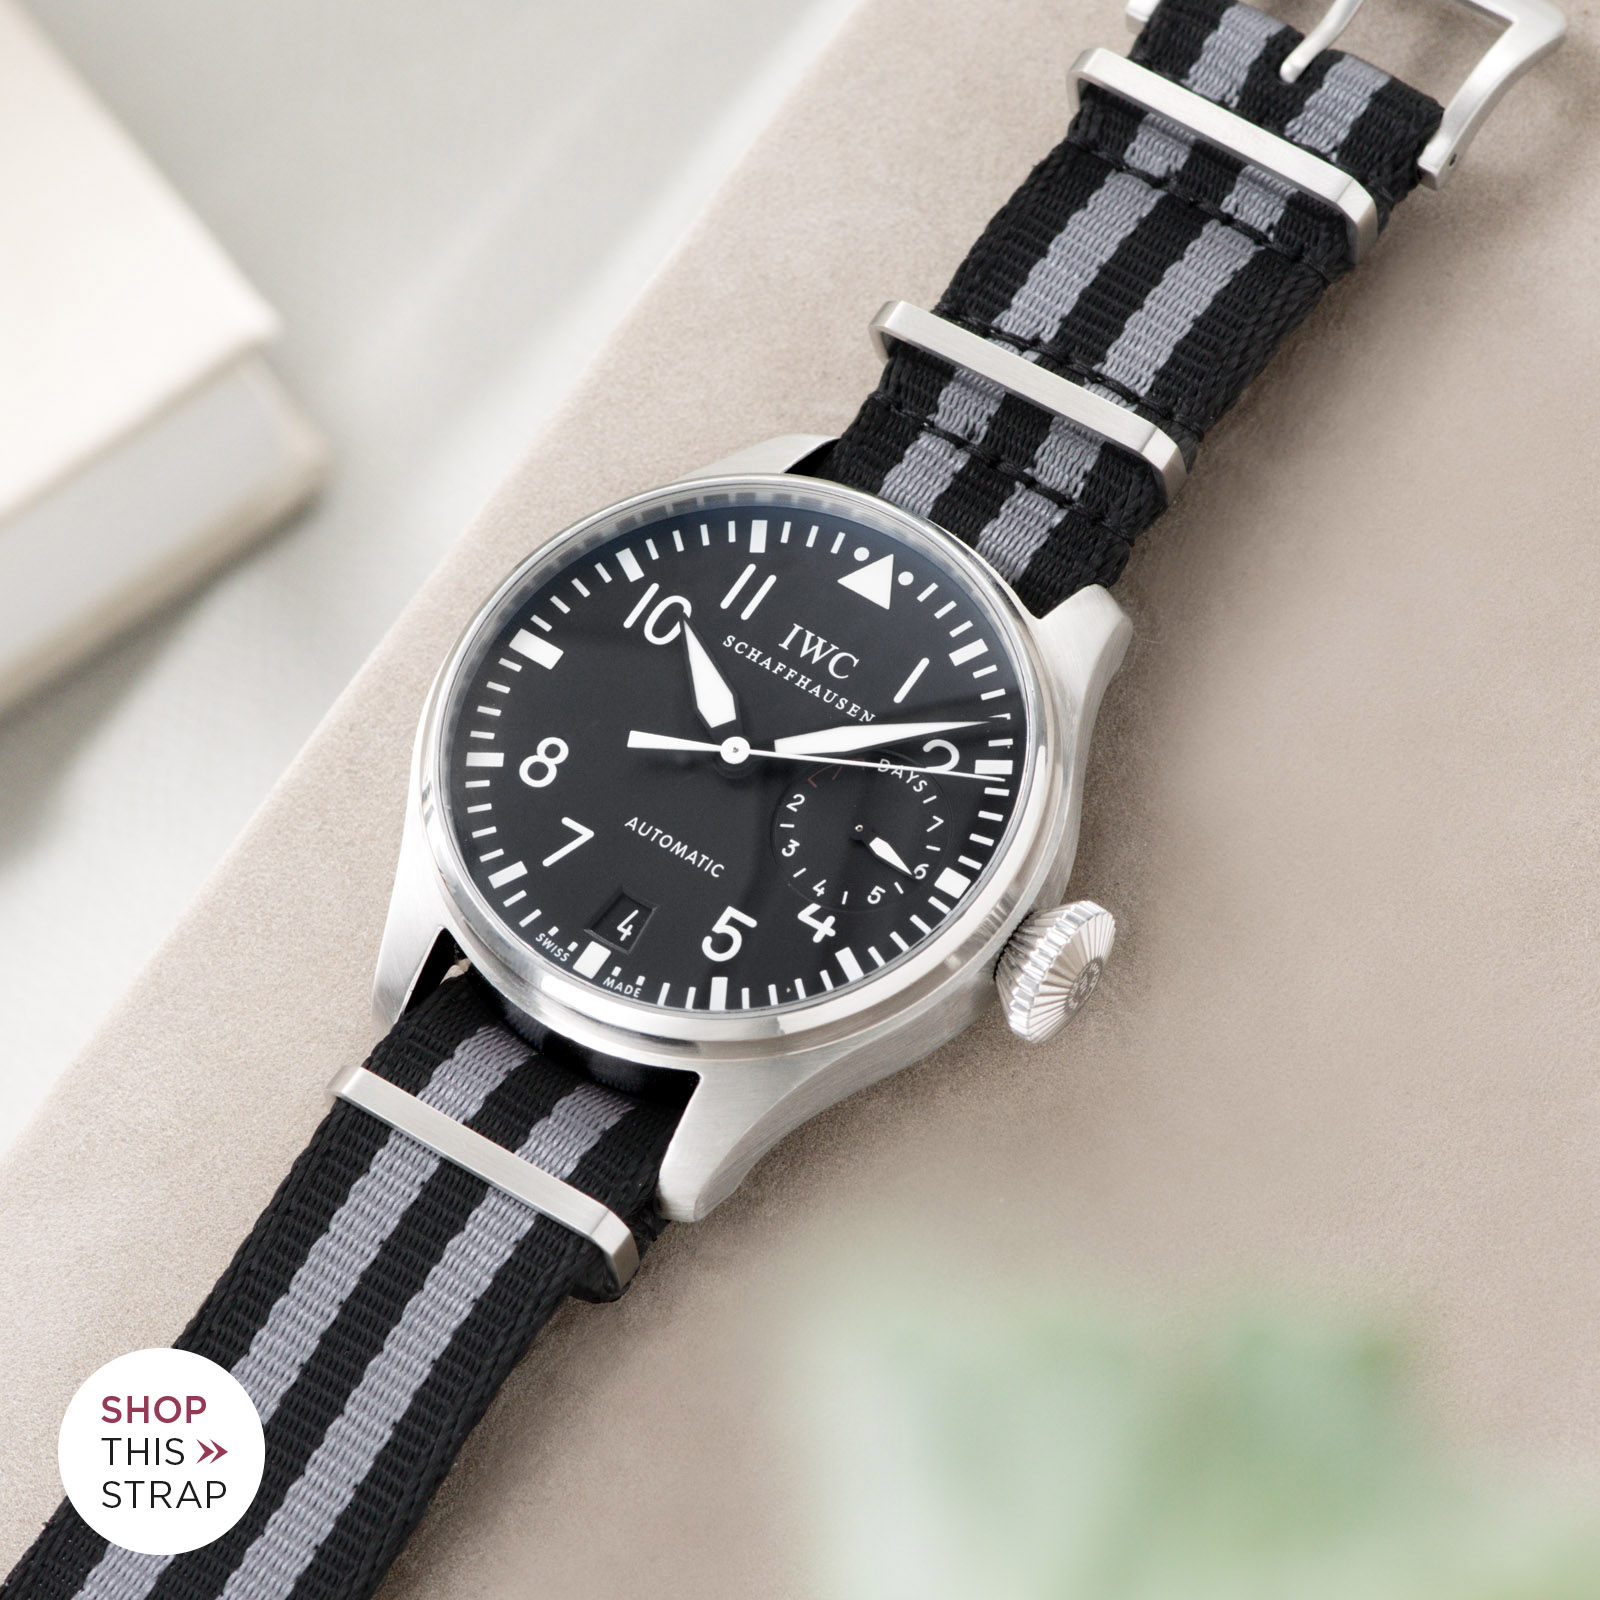 Bulang and Sons_Strap Guide_IWC Big Pilot ref IW5004_Deluxe Nylon Nato Watch Strap Black Two Stripes